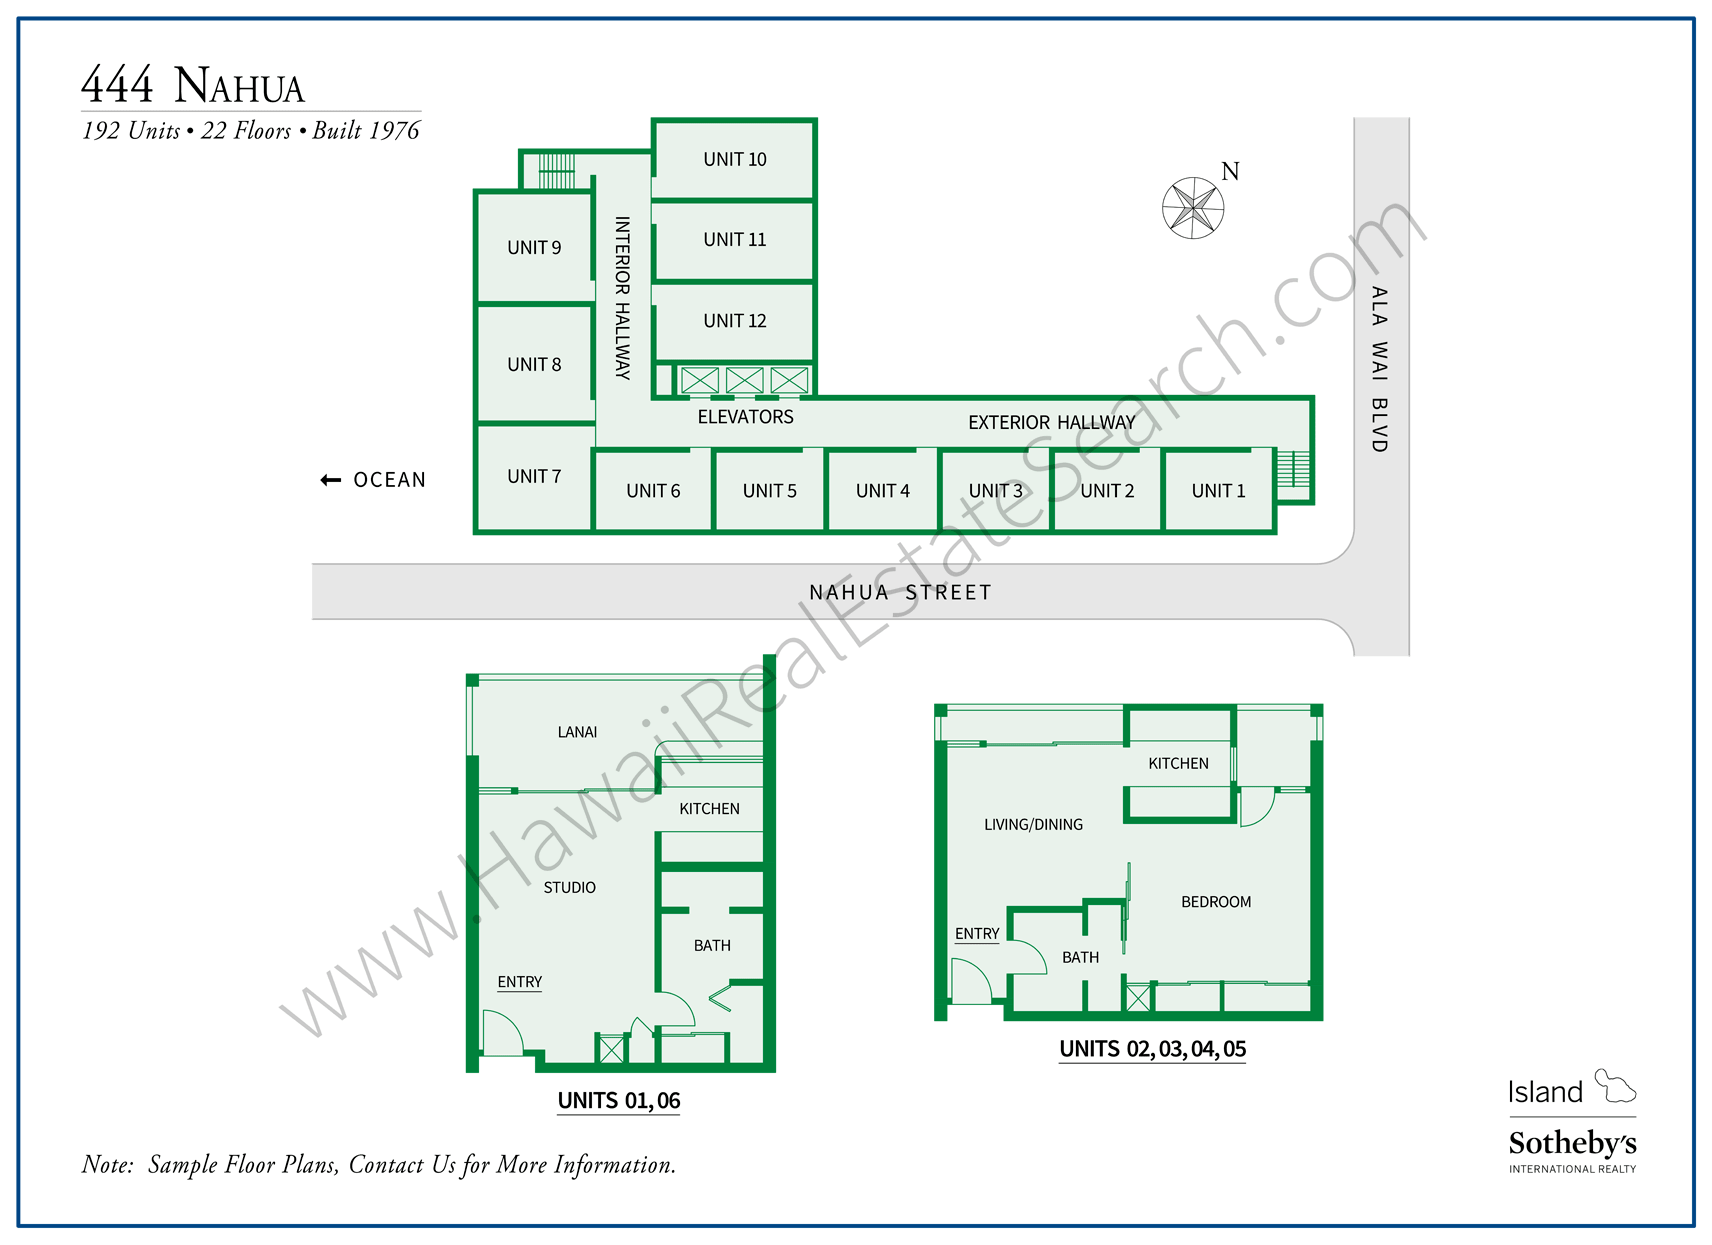 444 Nahua Property Map and Floor Plans